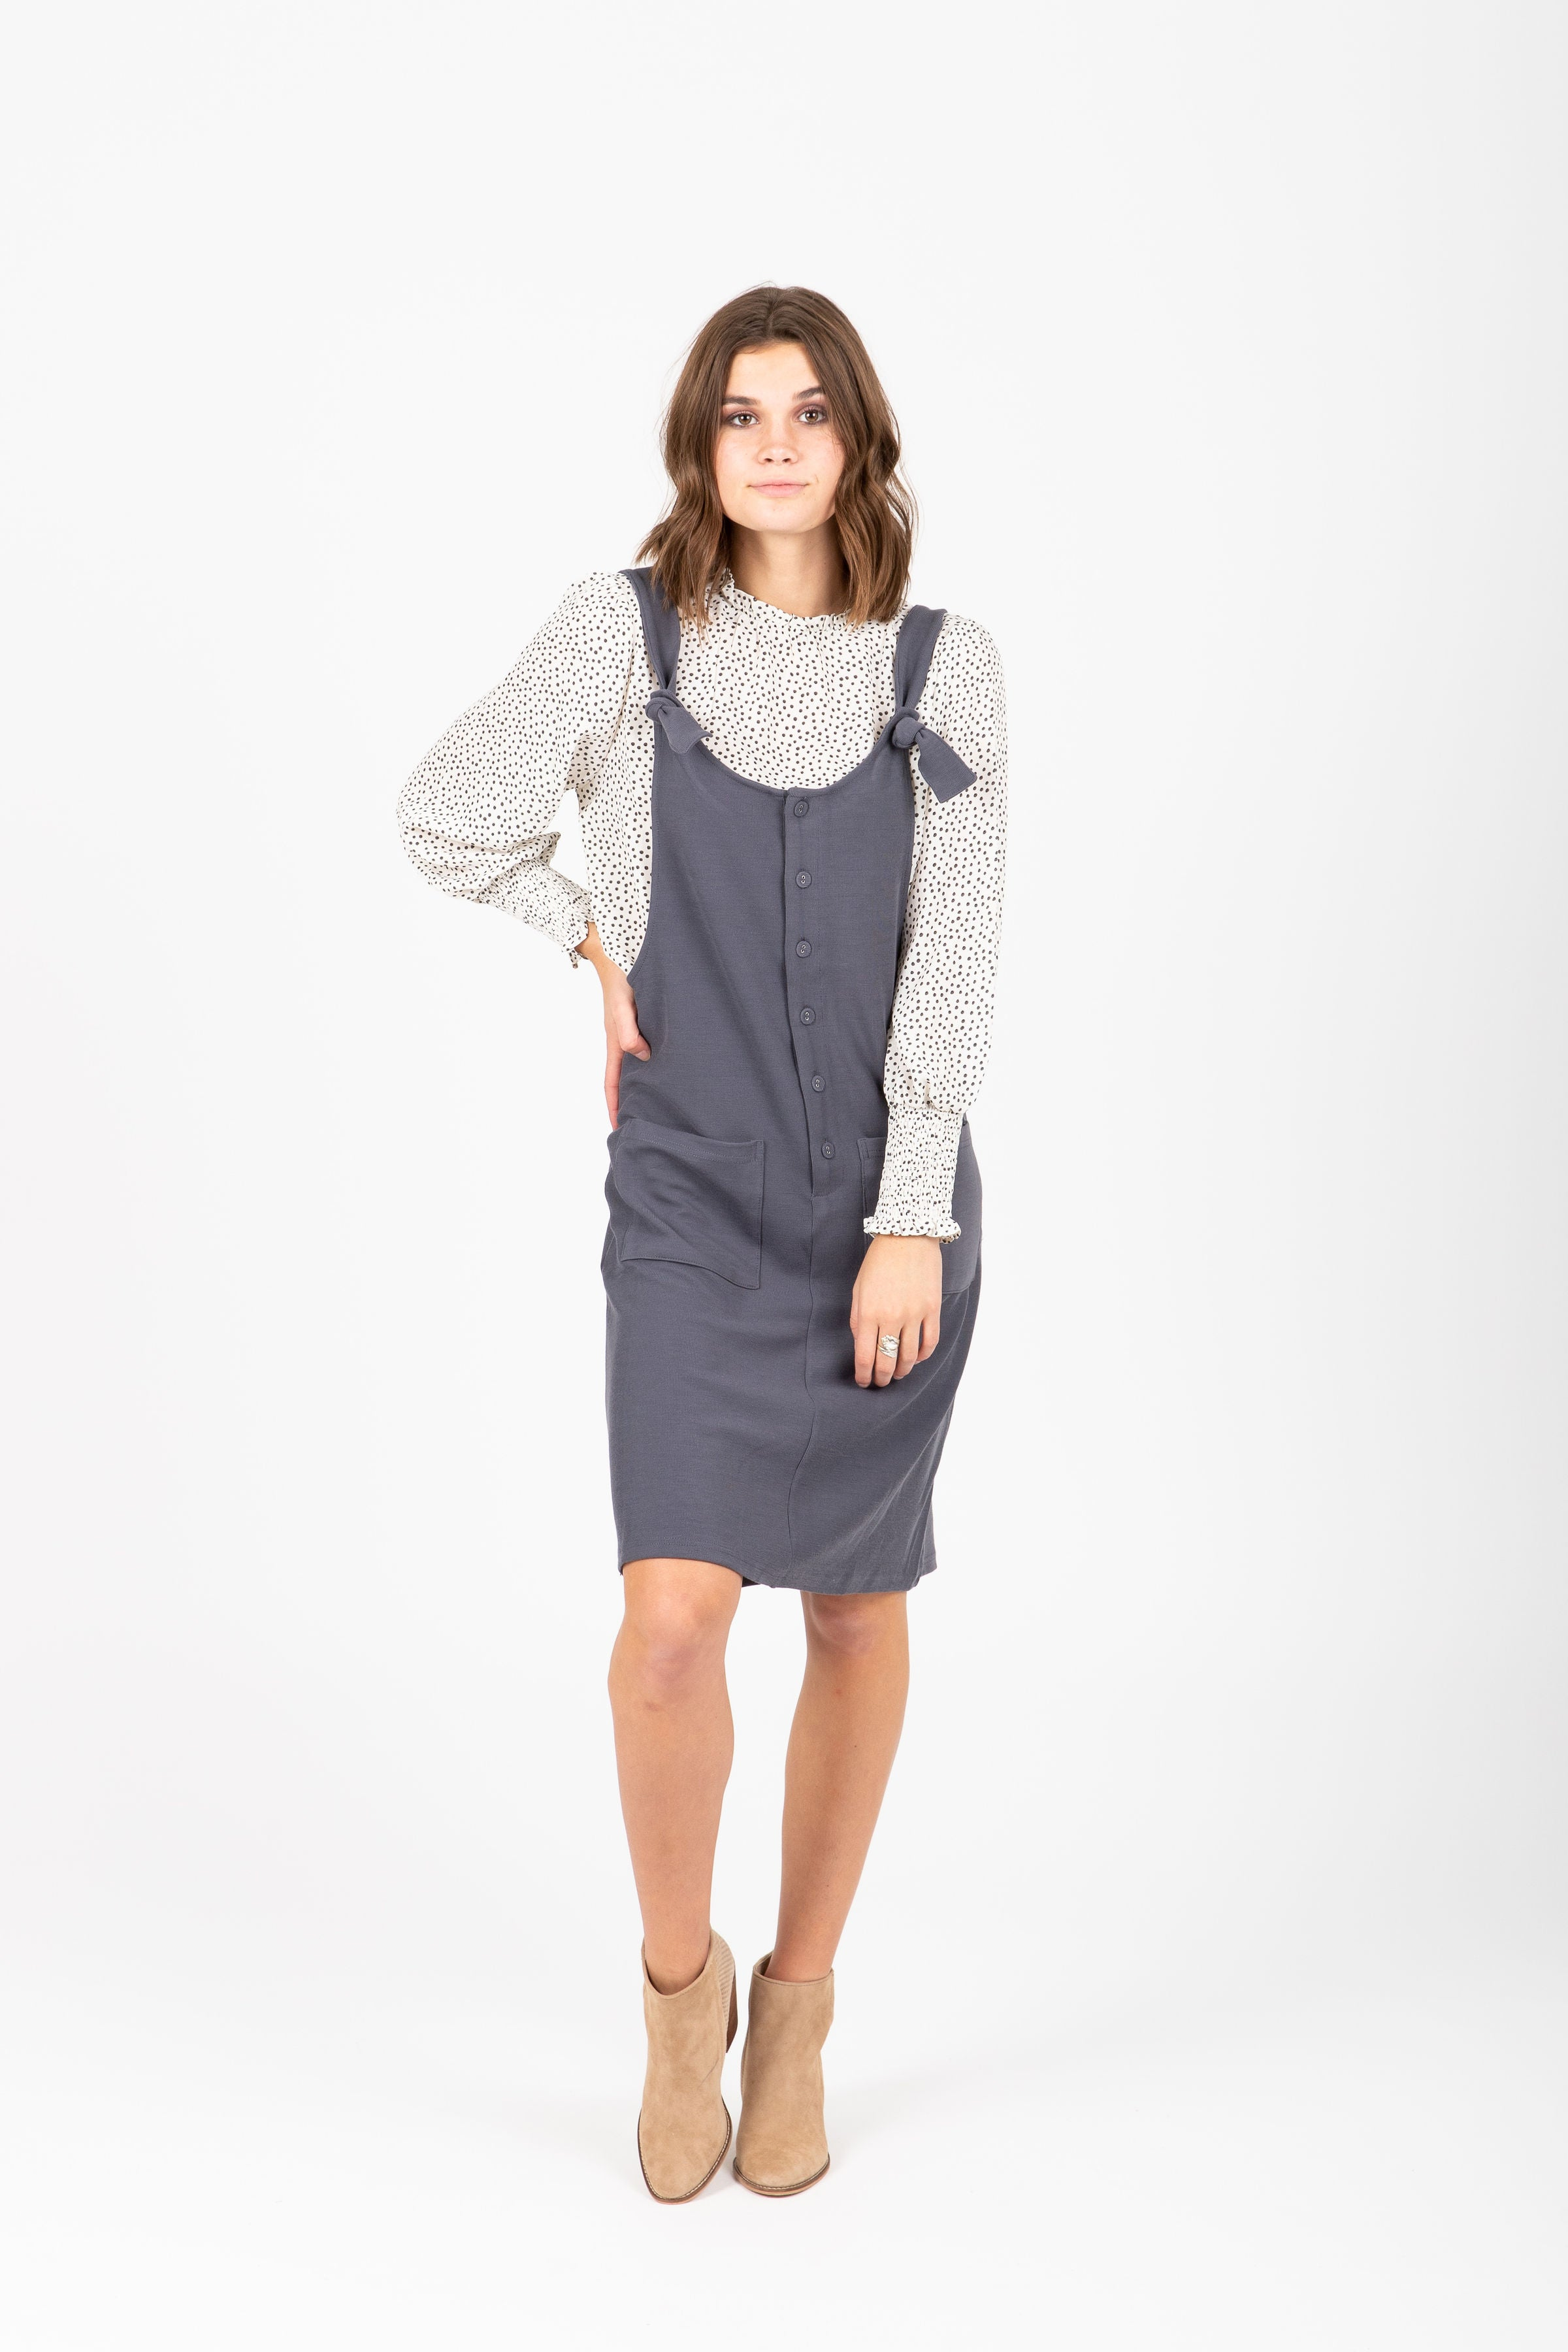 The Shevlin Jumper Dress in Grey